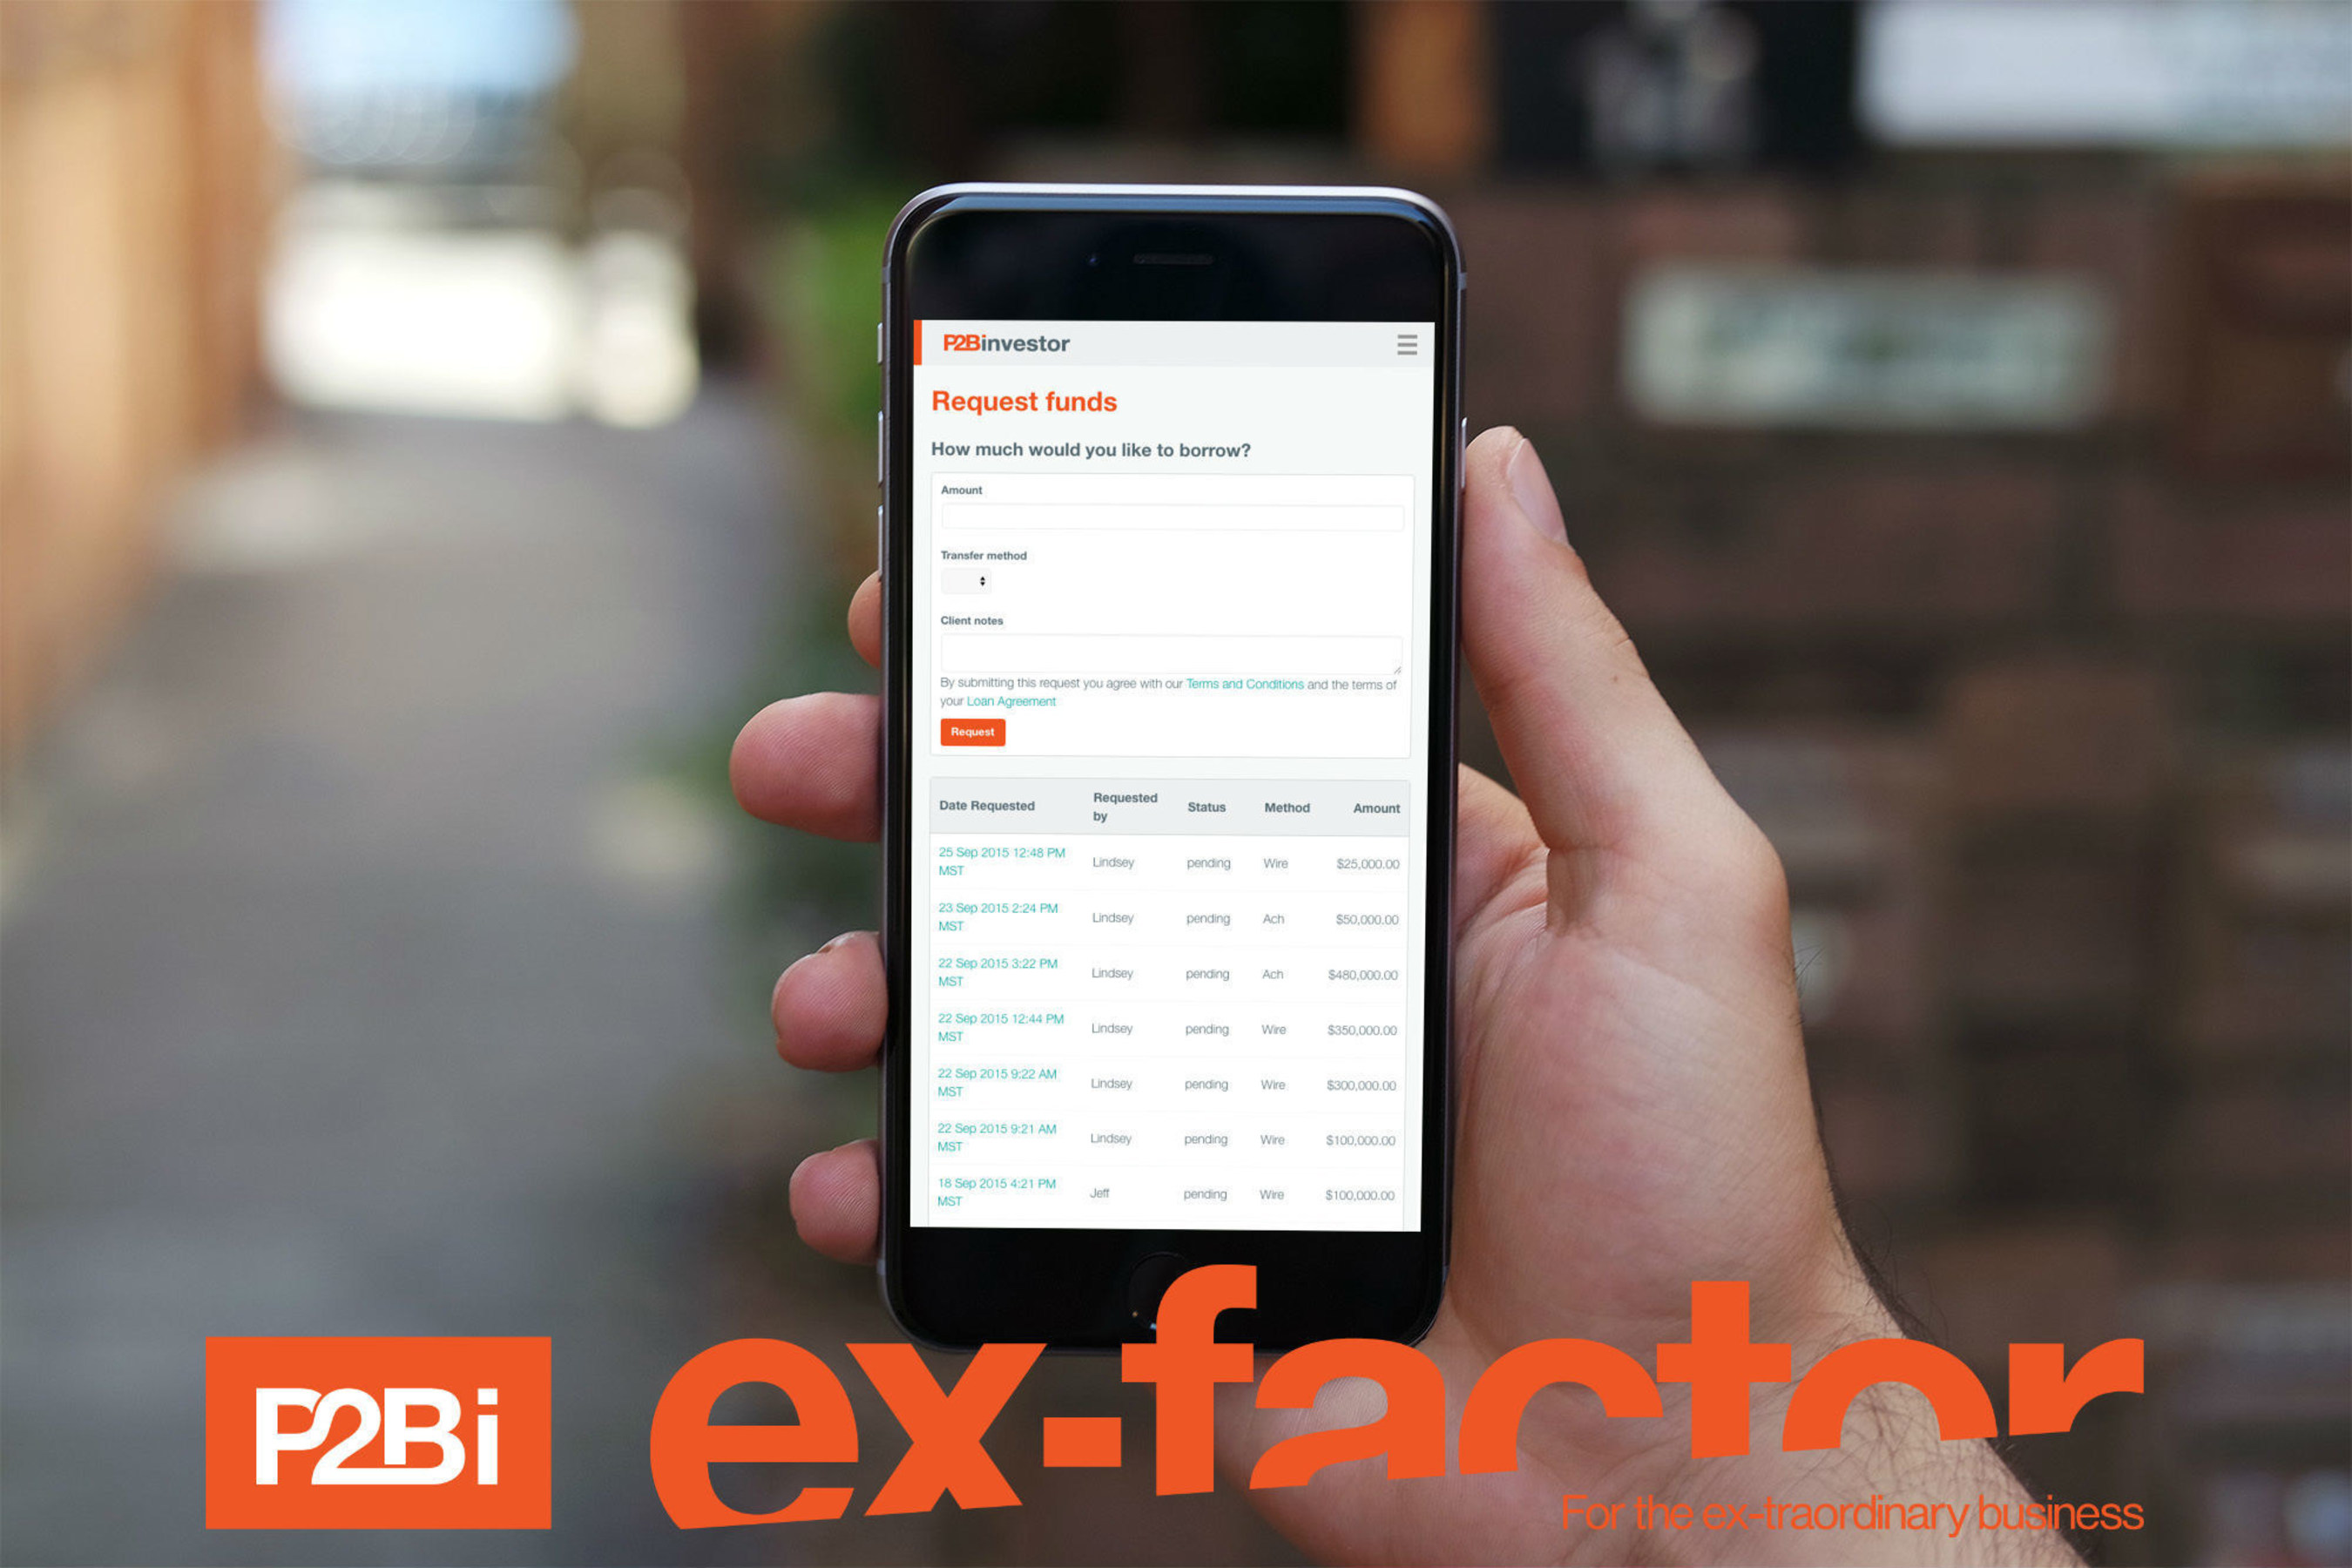 Marketplace Lender P2Binvestor Launches 'Ex-Factor,' A New Asset-Based Line of Credit